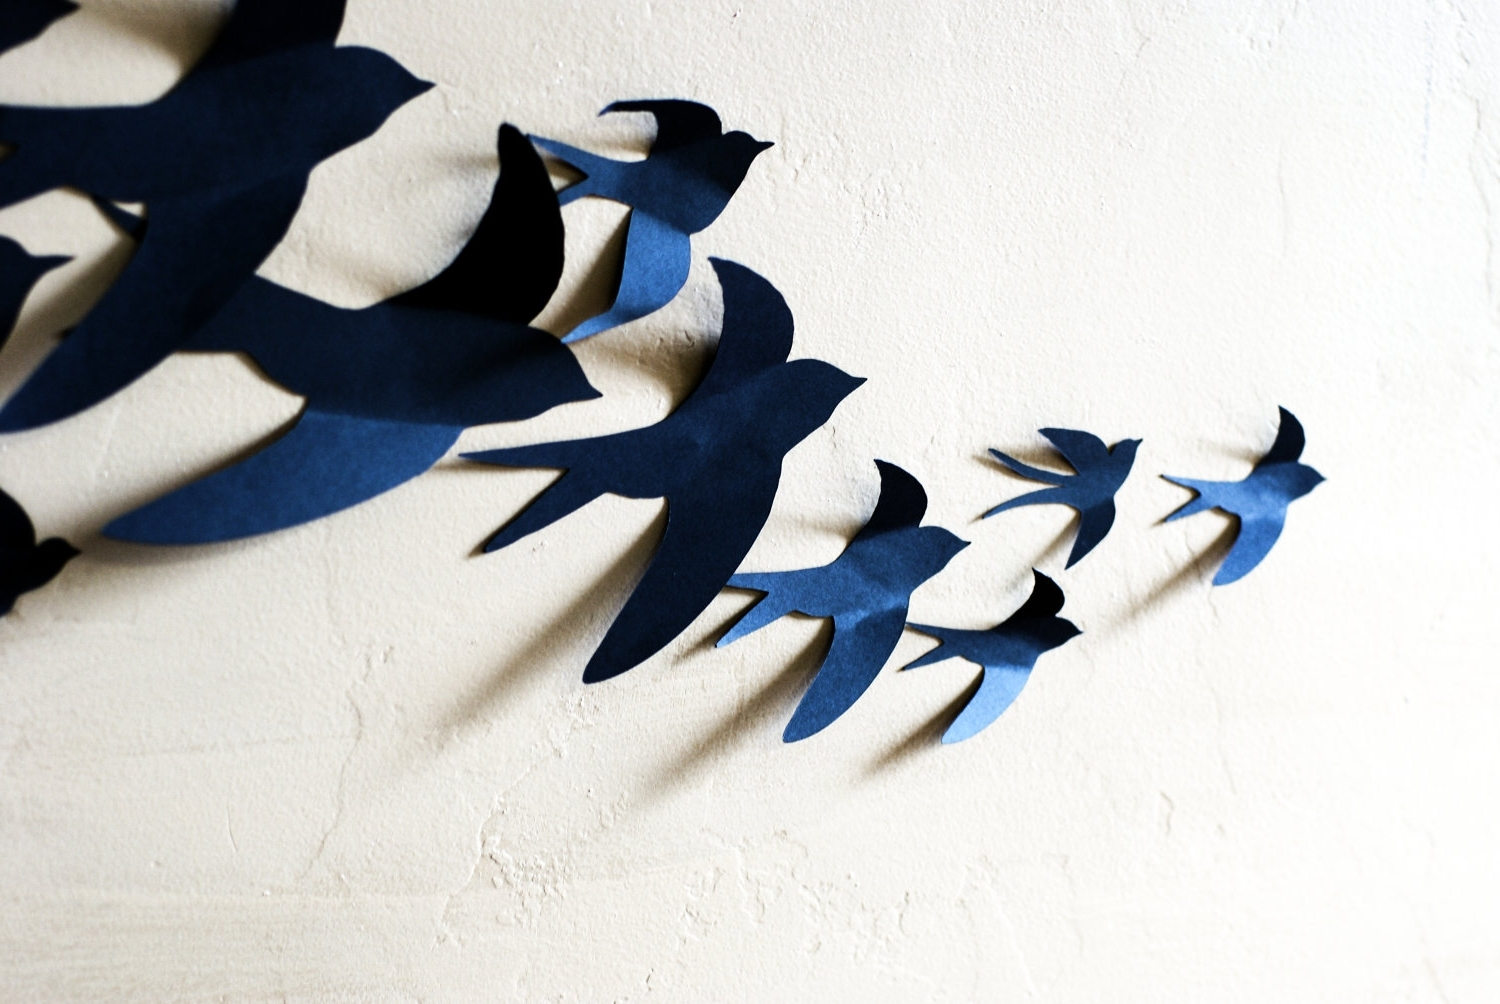 White Birds 3D Wall Art Pertaining To Most Current Plain Ideas Bird Wall Art Simple Decorating Birds Small Metal (View 14 of 15)